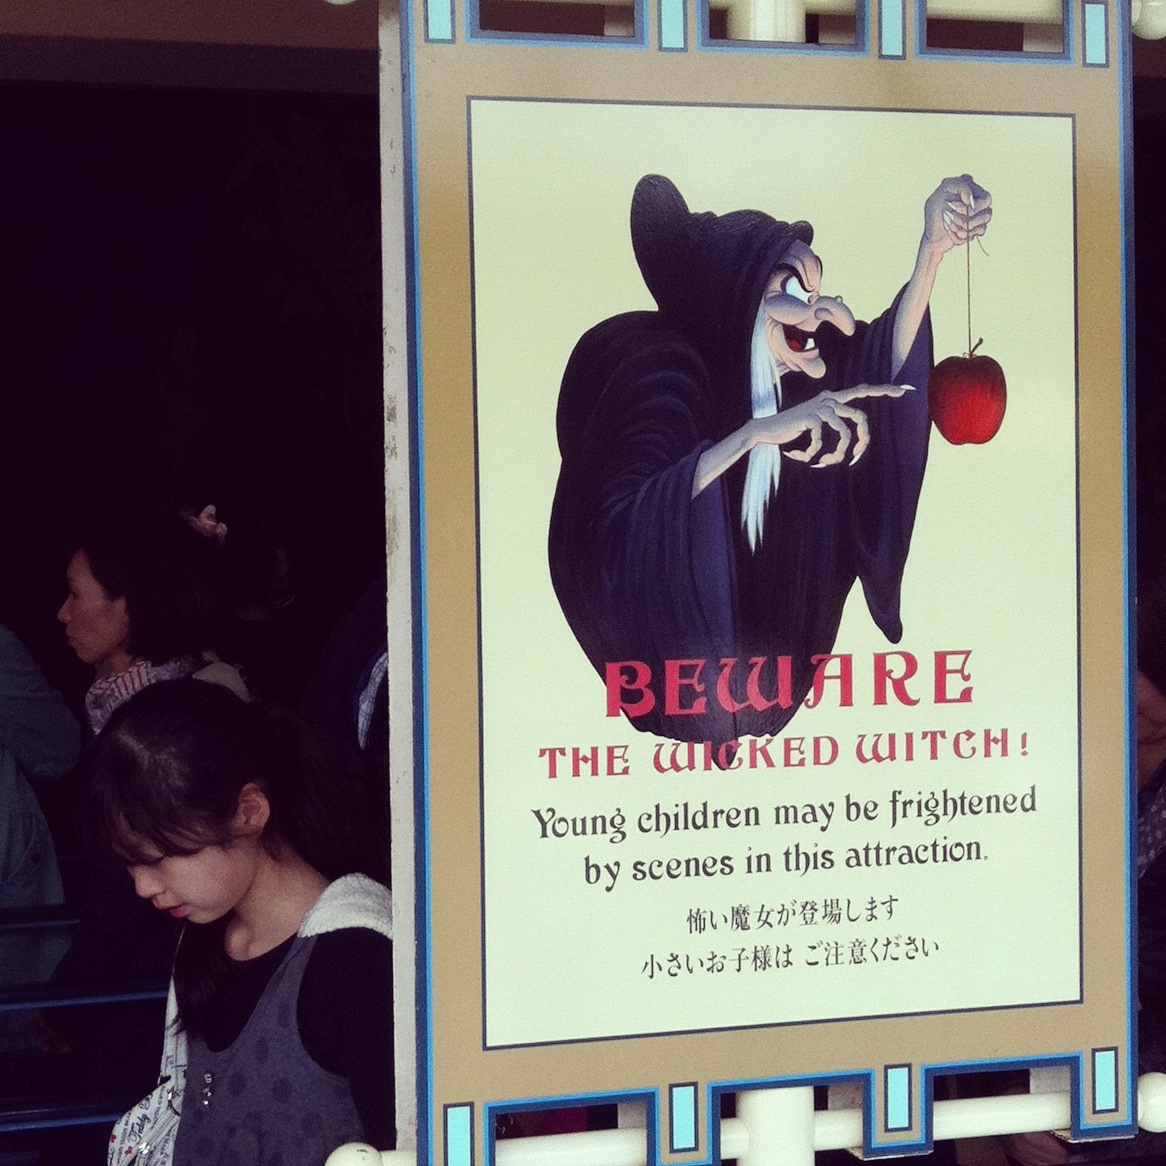 The scariest attraction at Disneyland. Snow White's Scary Ride!